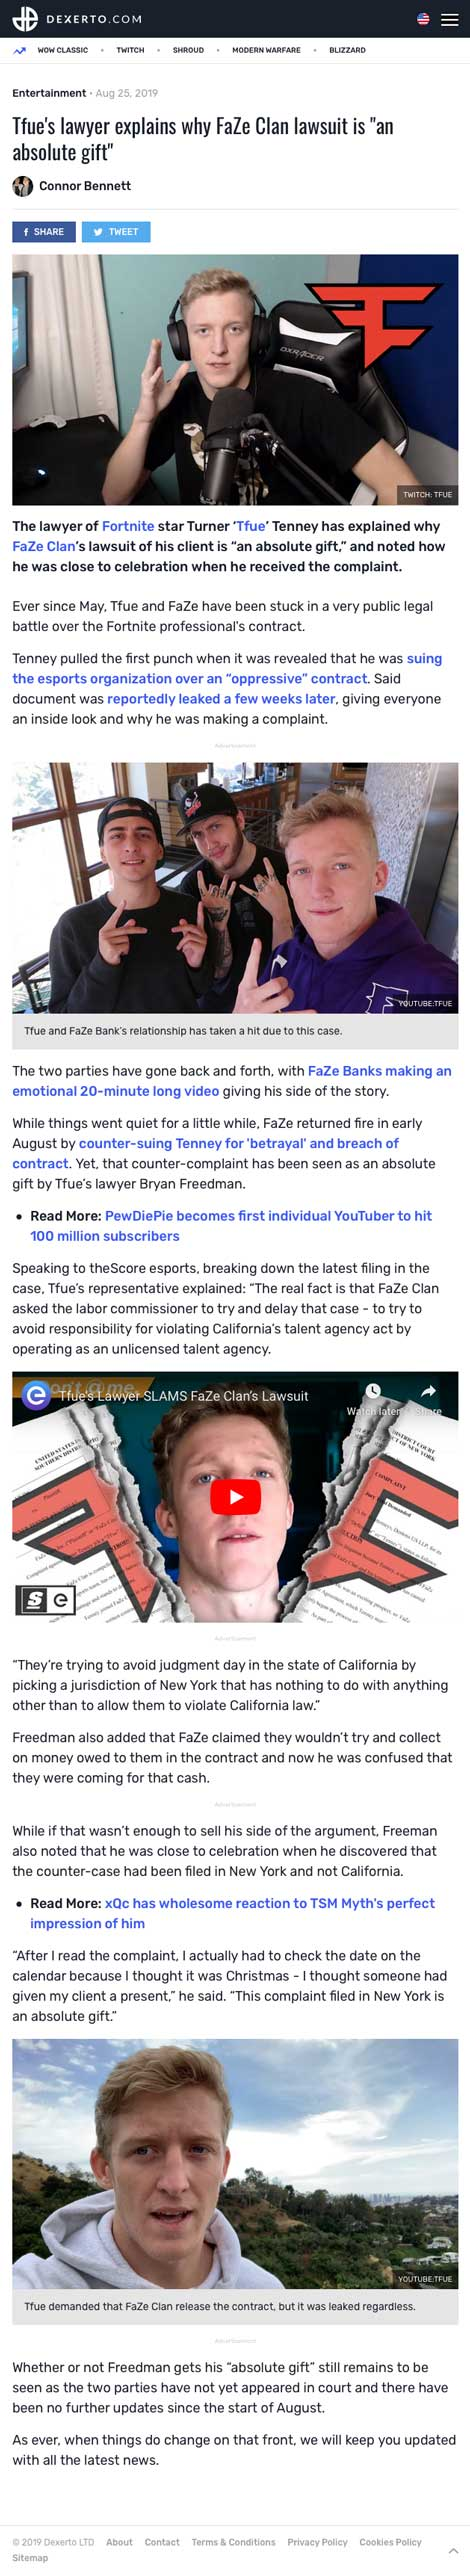 """Tfue's lawyer explains why FaZe Clan lawsuit is """"an absolute gift"""" - article by Dexerto.com"""